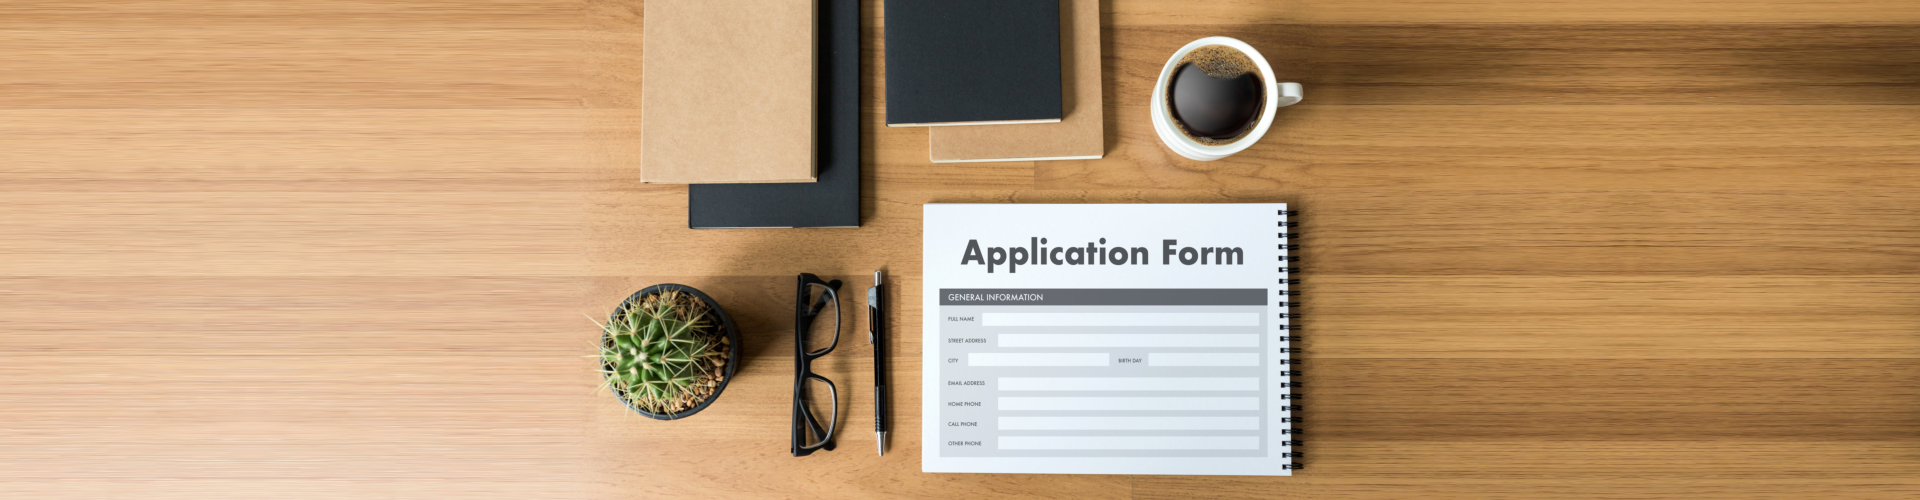 Application Form on the table